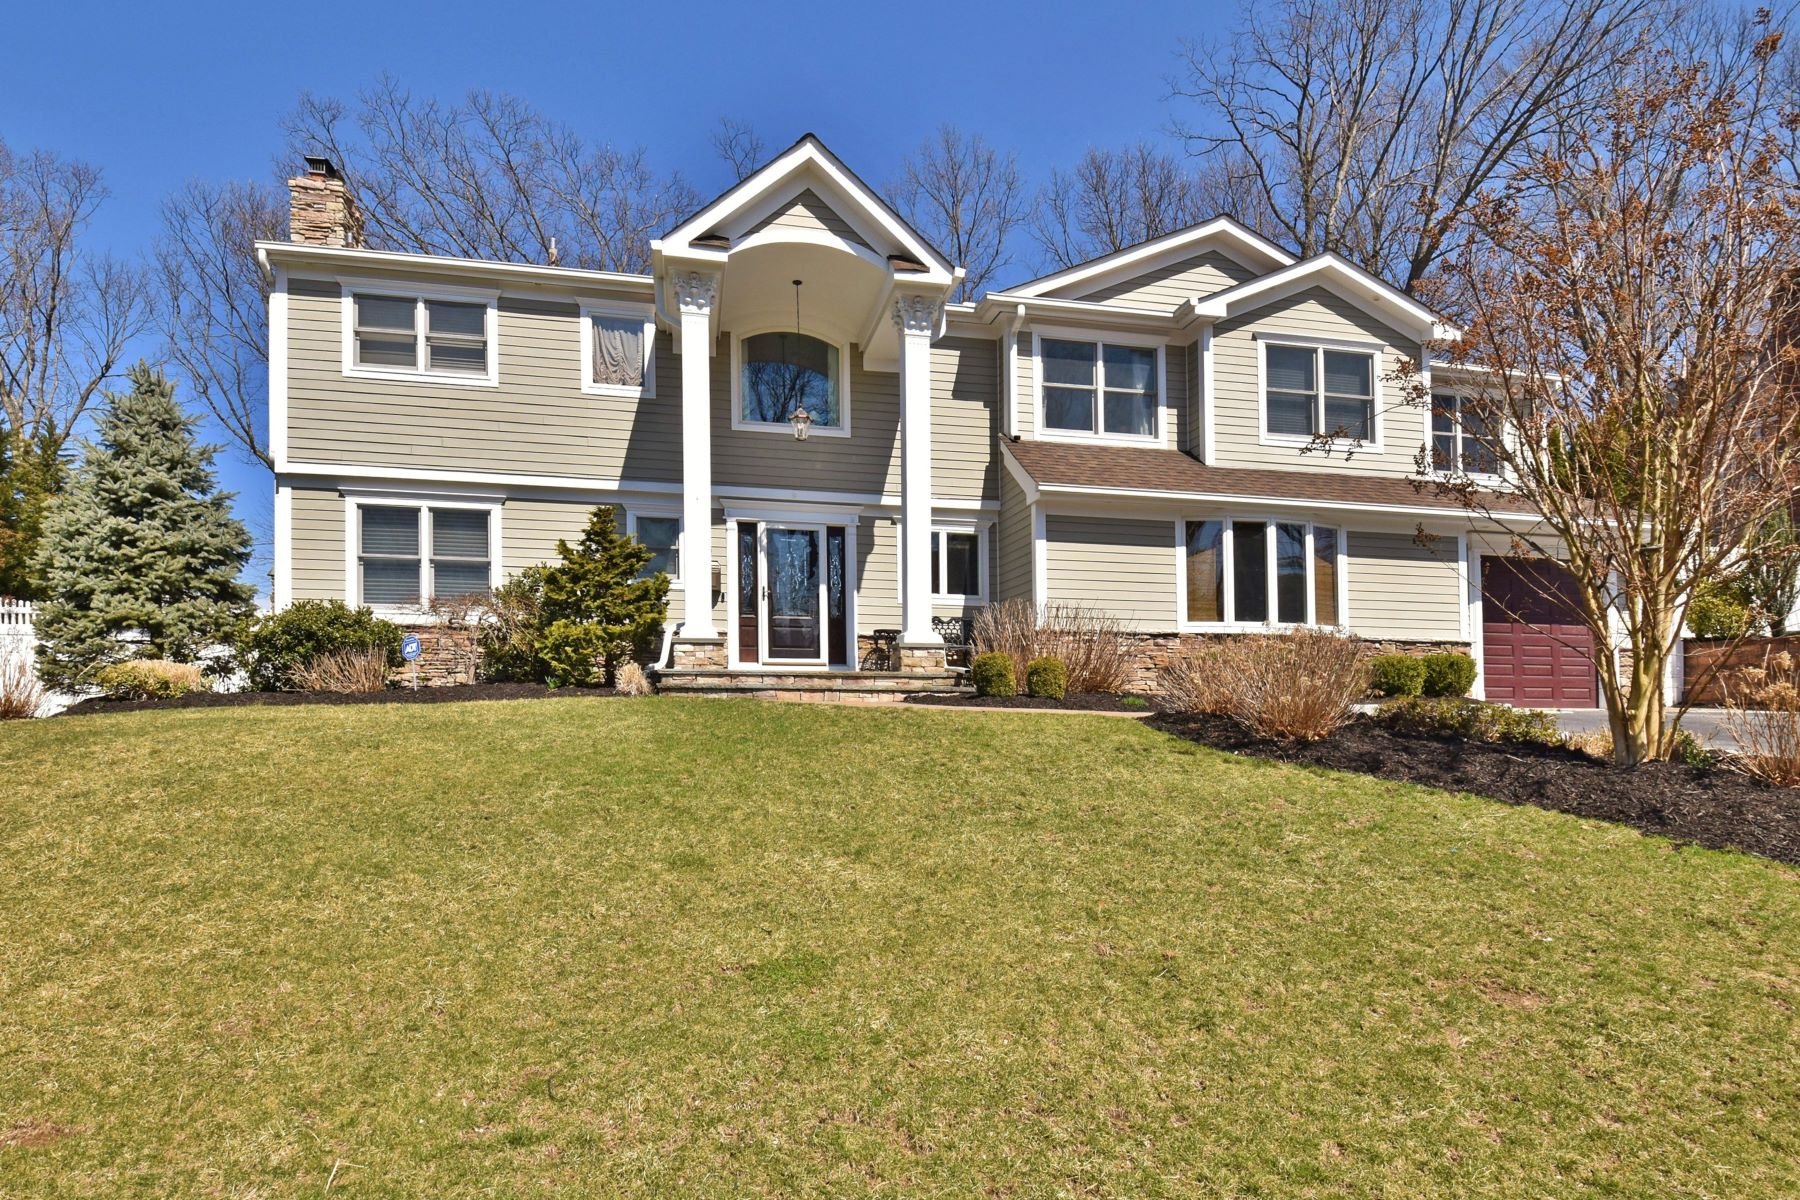 Single Family Homes for Active at Oyster Bay 10 Blueberry Ln Oyster Bay, New York 11771 United States